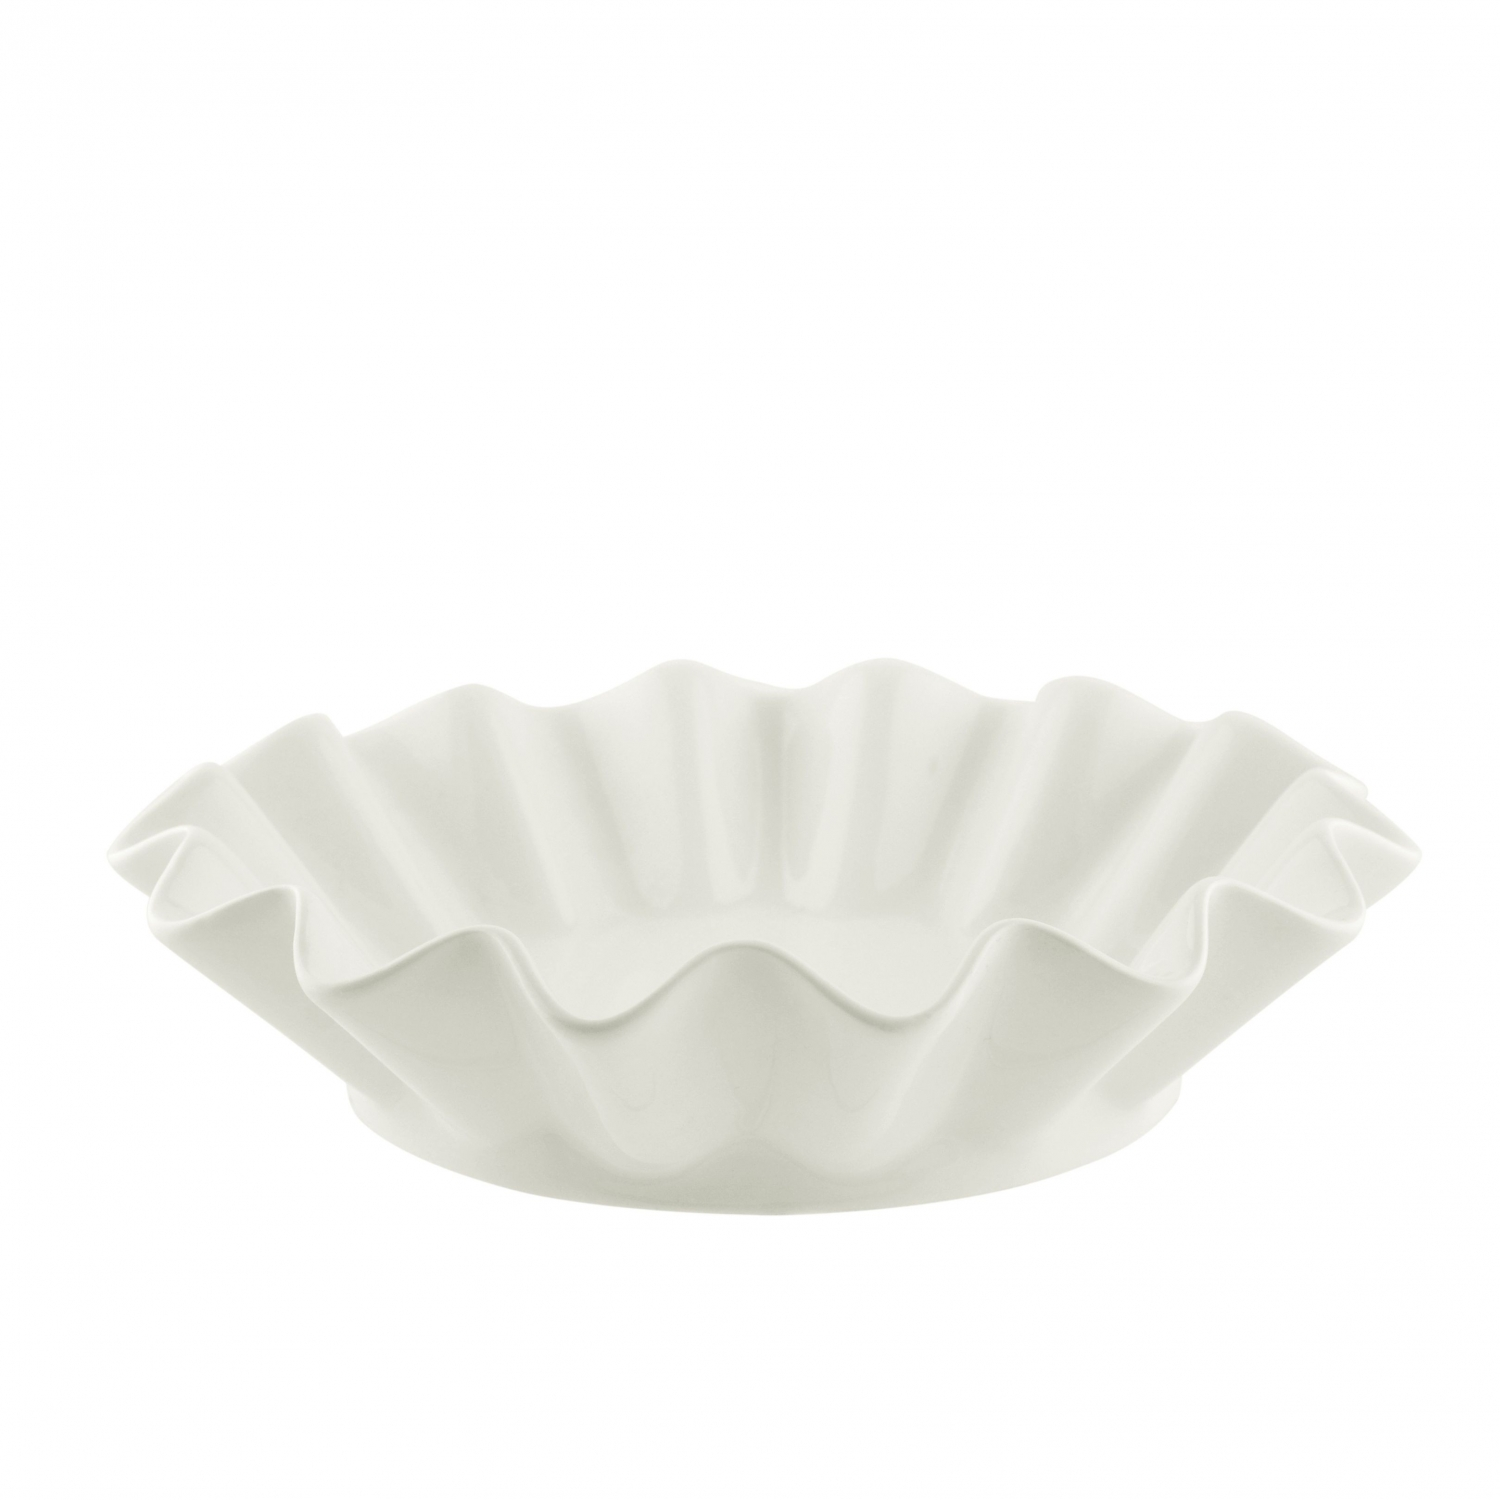 10 Strawberry Street WTR-8RFLBWL Whittier Ruffled Bowl 8 oz.